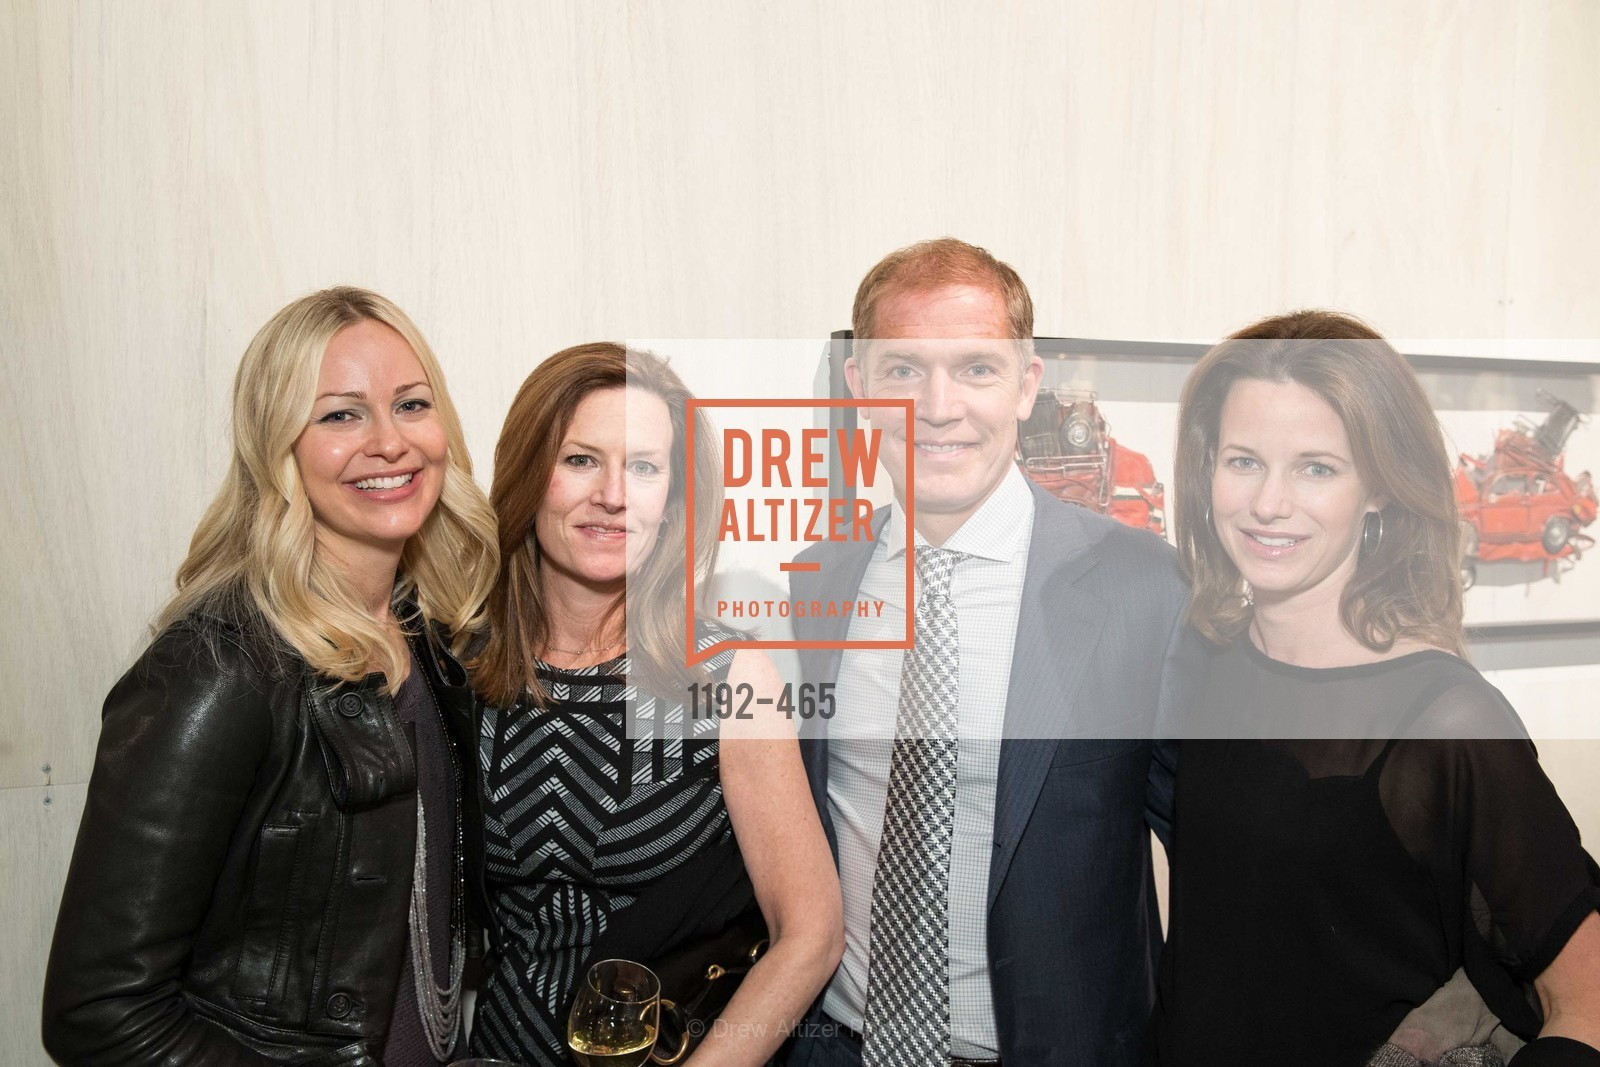 Carrie Gretsch, Brett Lilienthal, Greg Gretsch, Lindsay Bolton, FOG Design + Art Preview Gala, US. US, January 16th, 2014,Drew Altizer, Drew Altizer Photography, full-service agency, private events, San Francisco photographer, photographer california